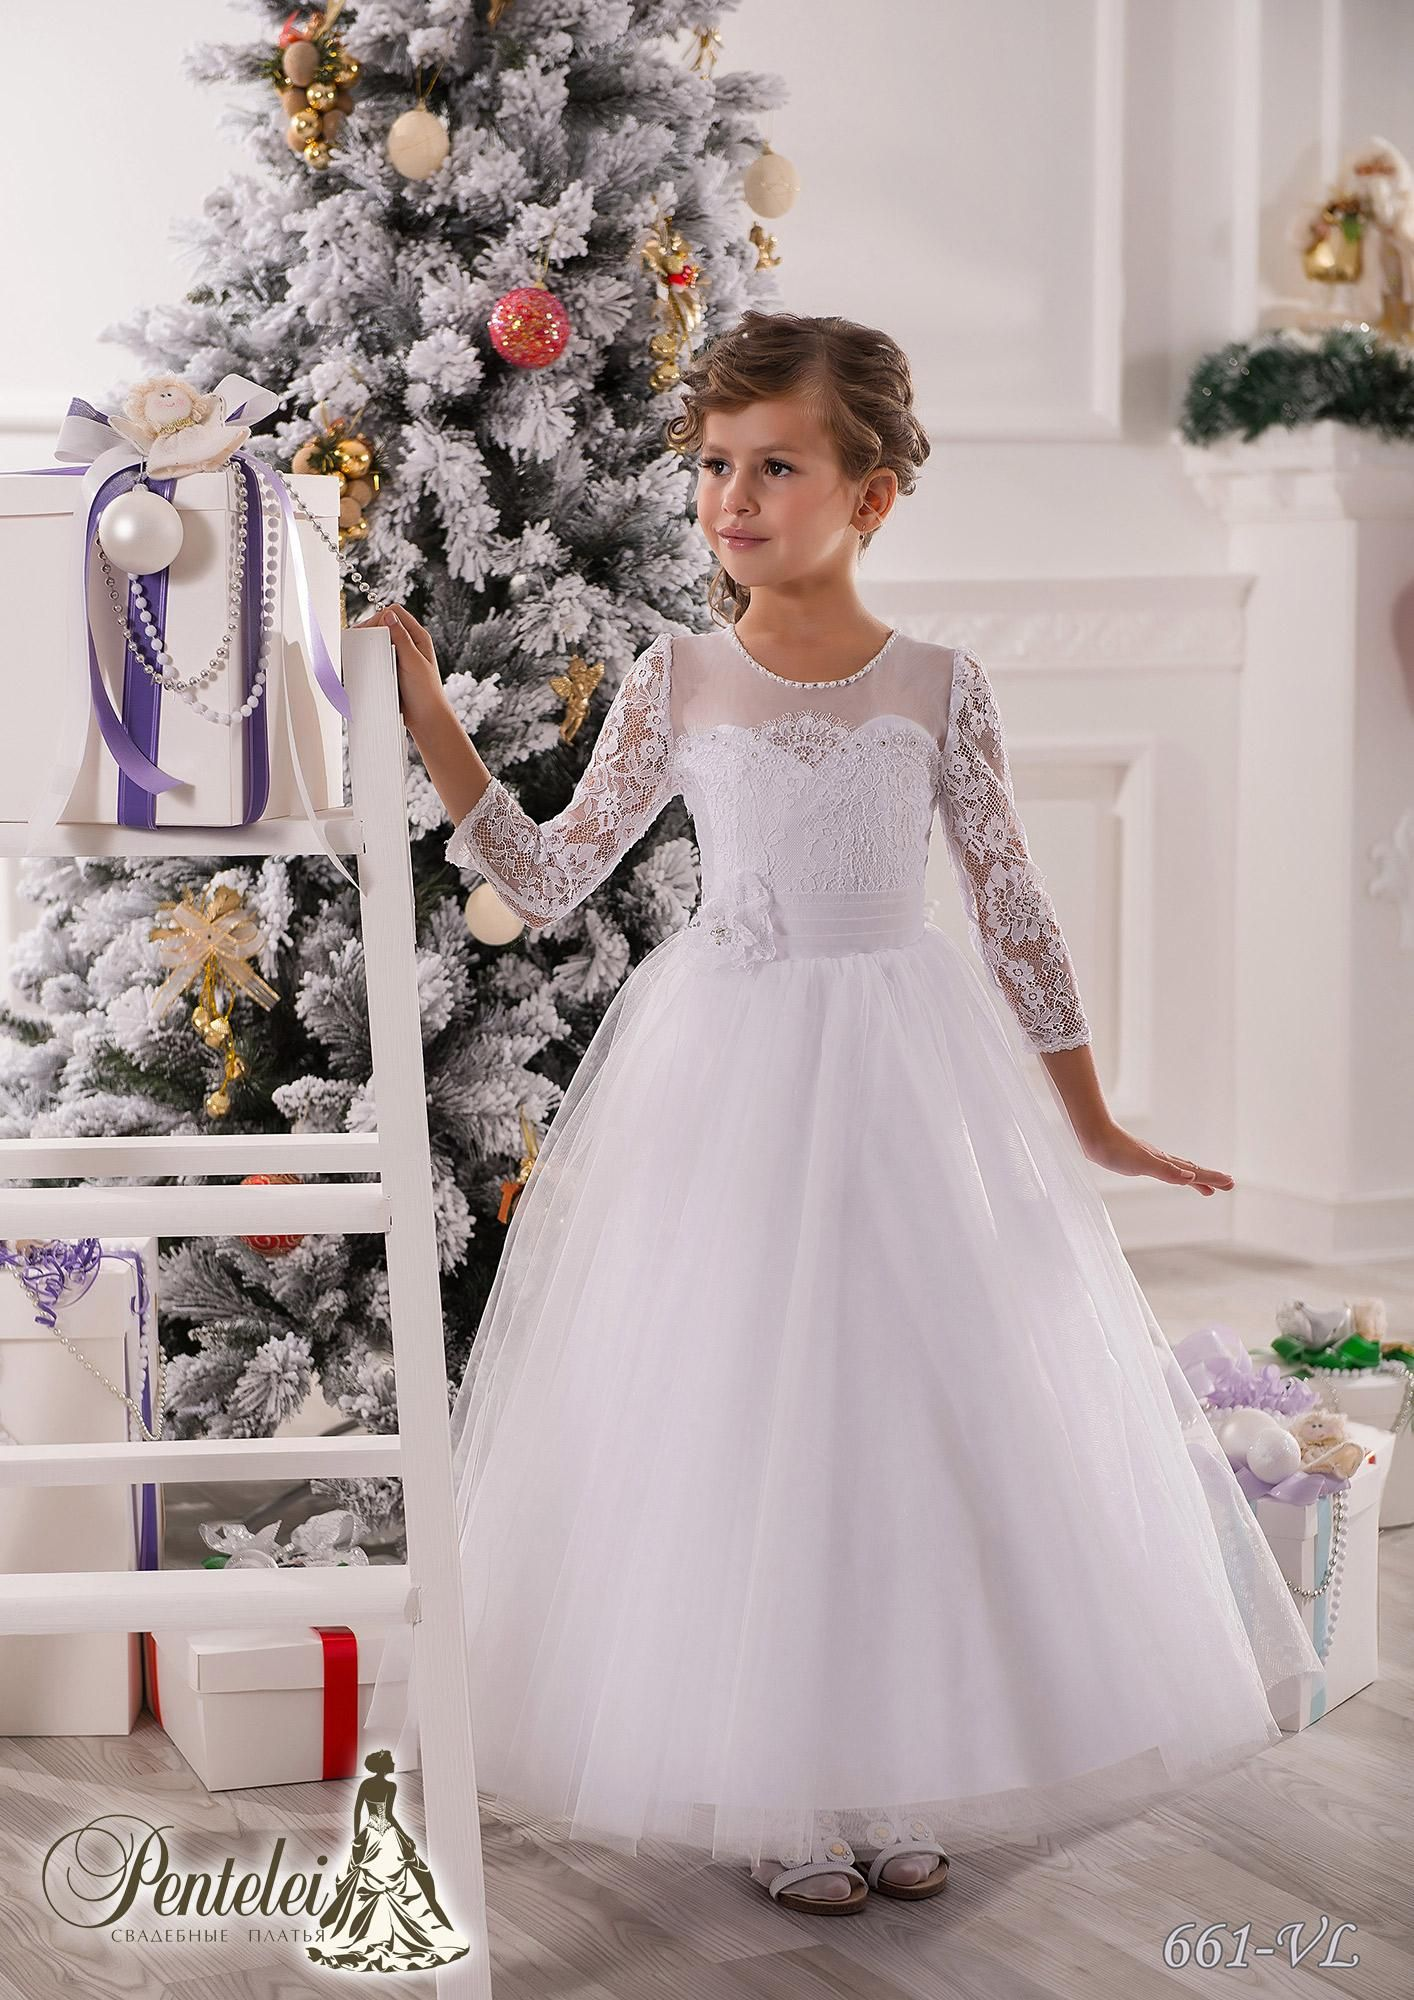 Jewel 3 4 Sleeves Beaded Lace Net Baby Girl Birthday Party Christmas Princess Dresses Children Girl Party Dresses Flower Girl Dresses From Weddingmall 47 91 Flower Girl Dresses Tulle Wedding Dresses For [ 2000 x 1414 Pixel ]